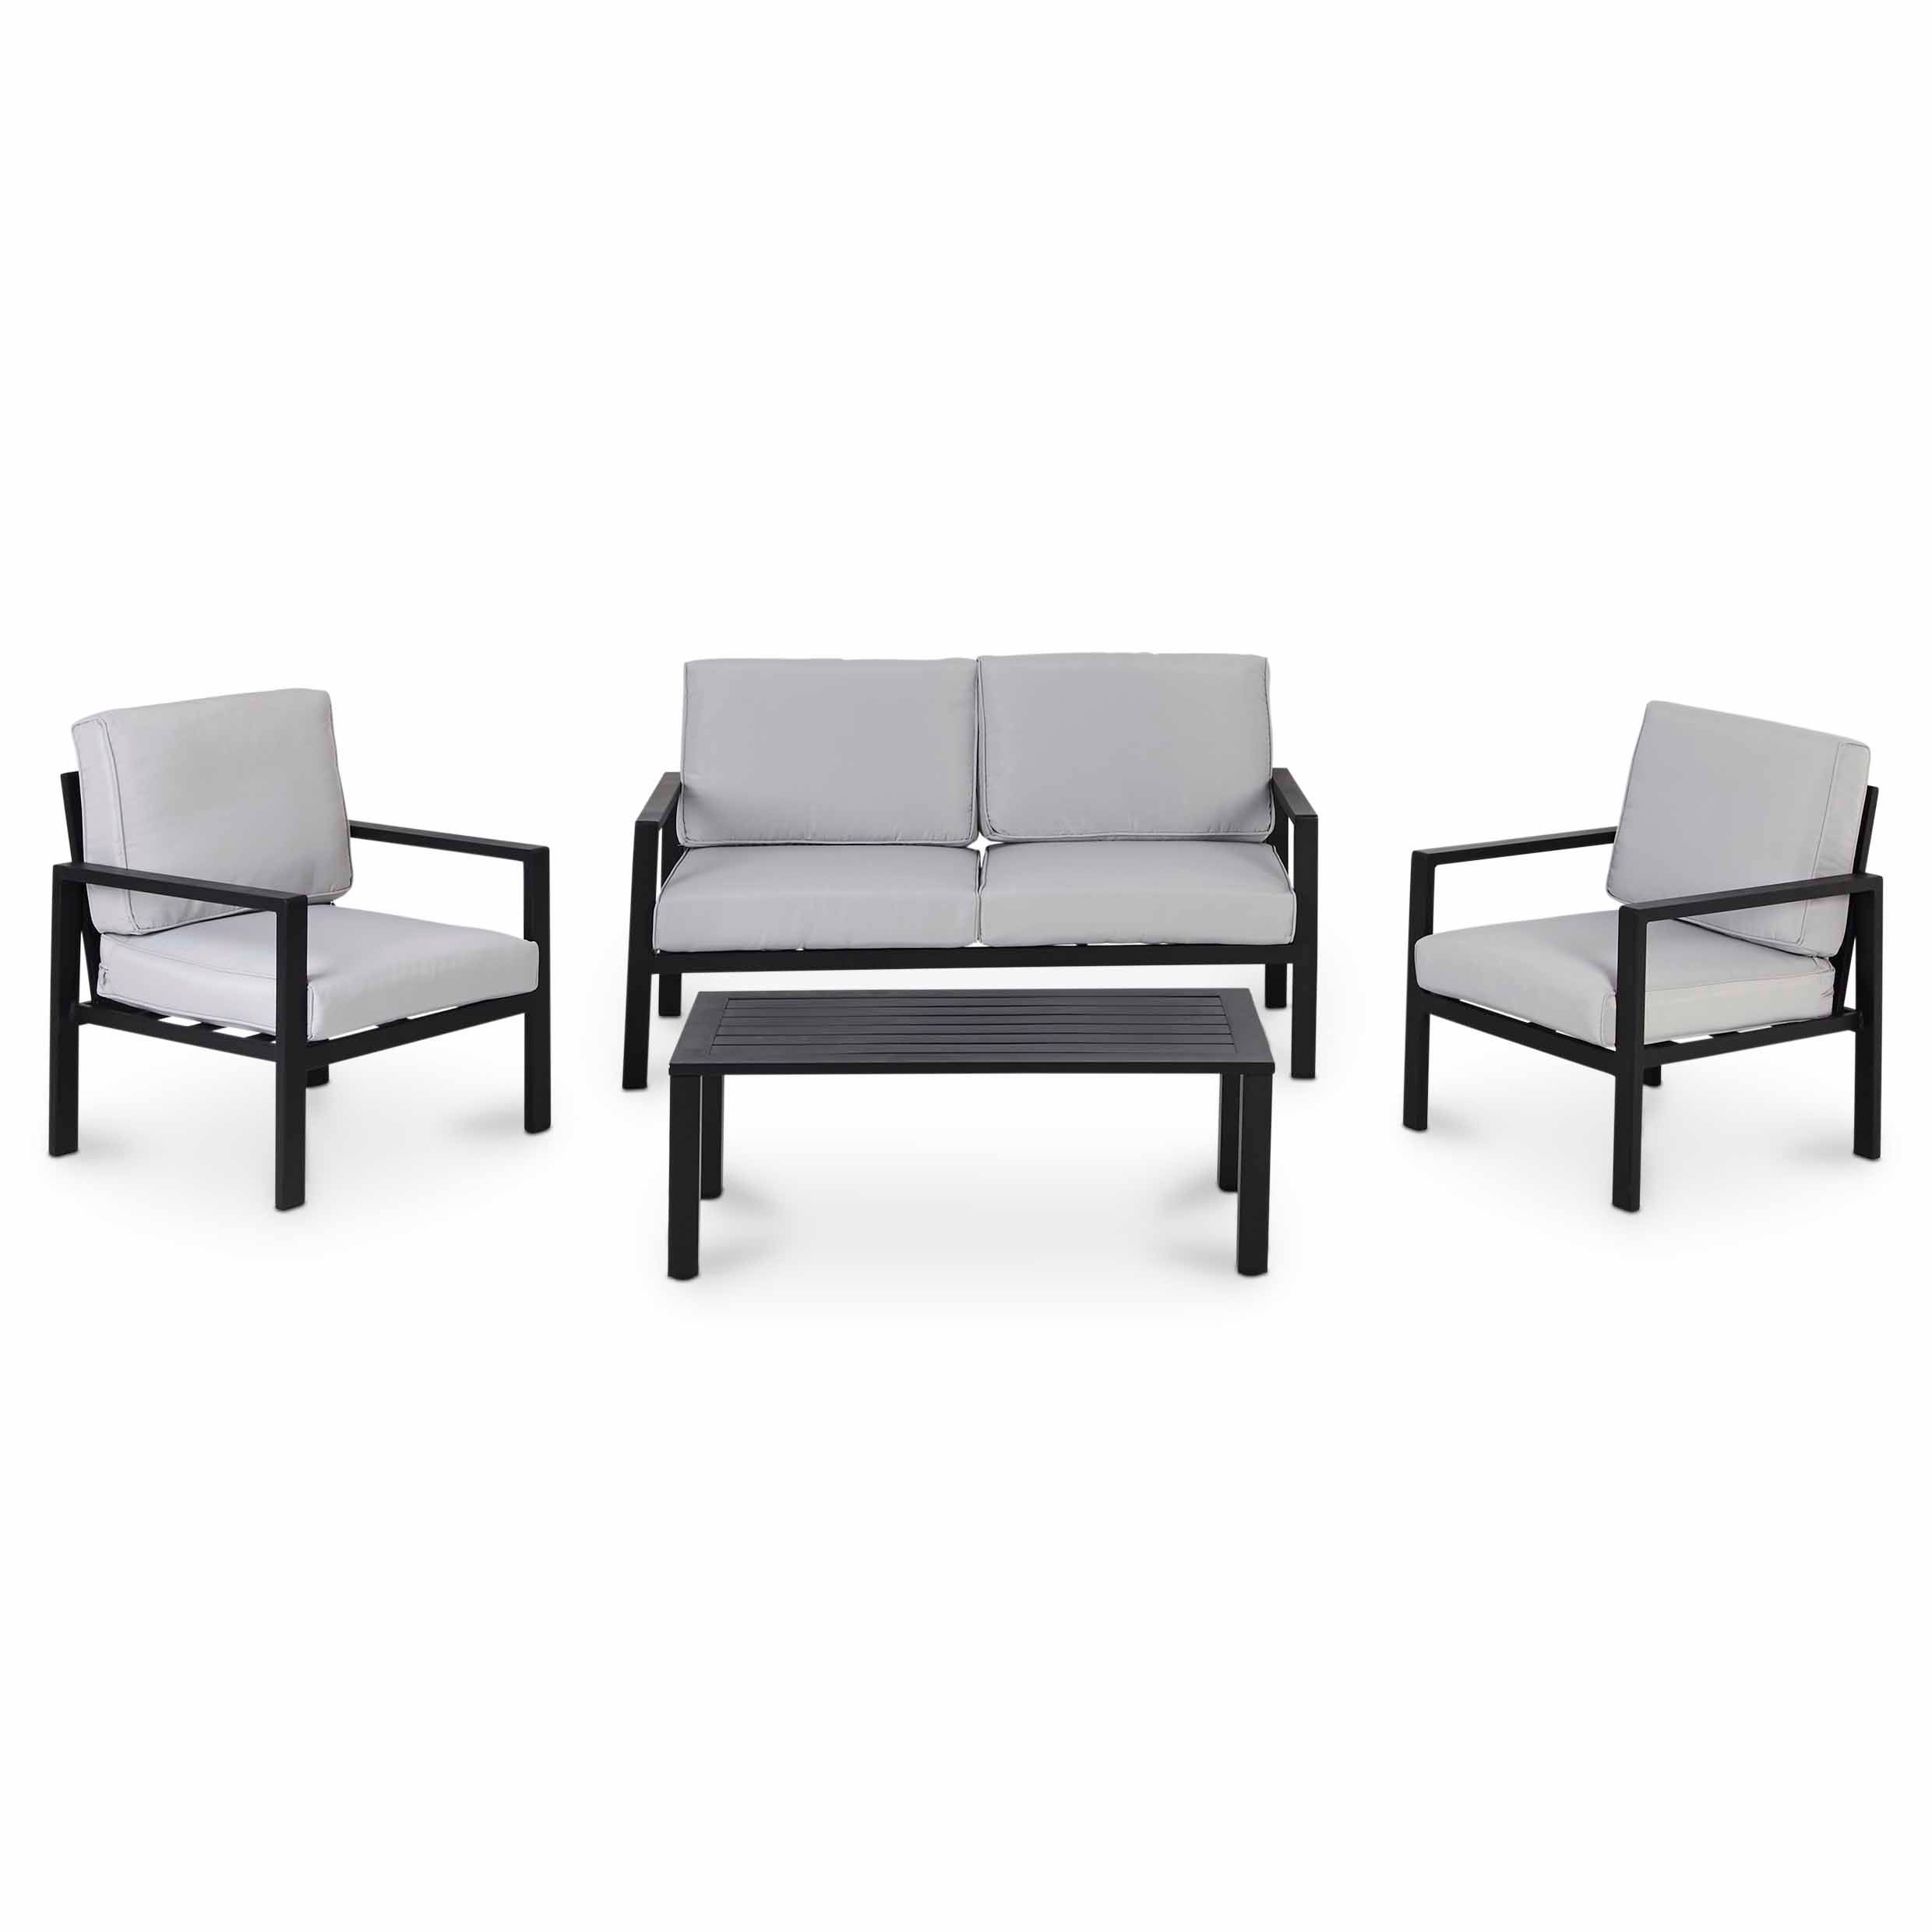 Jaz Metal 4 Seater Coffee Set B Q For All Your Home And Garden Supplies And Advice On All The Latest D B Q Garden Furniture Coffee Table Coffee Table Setting